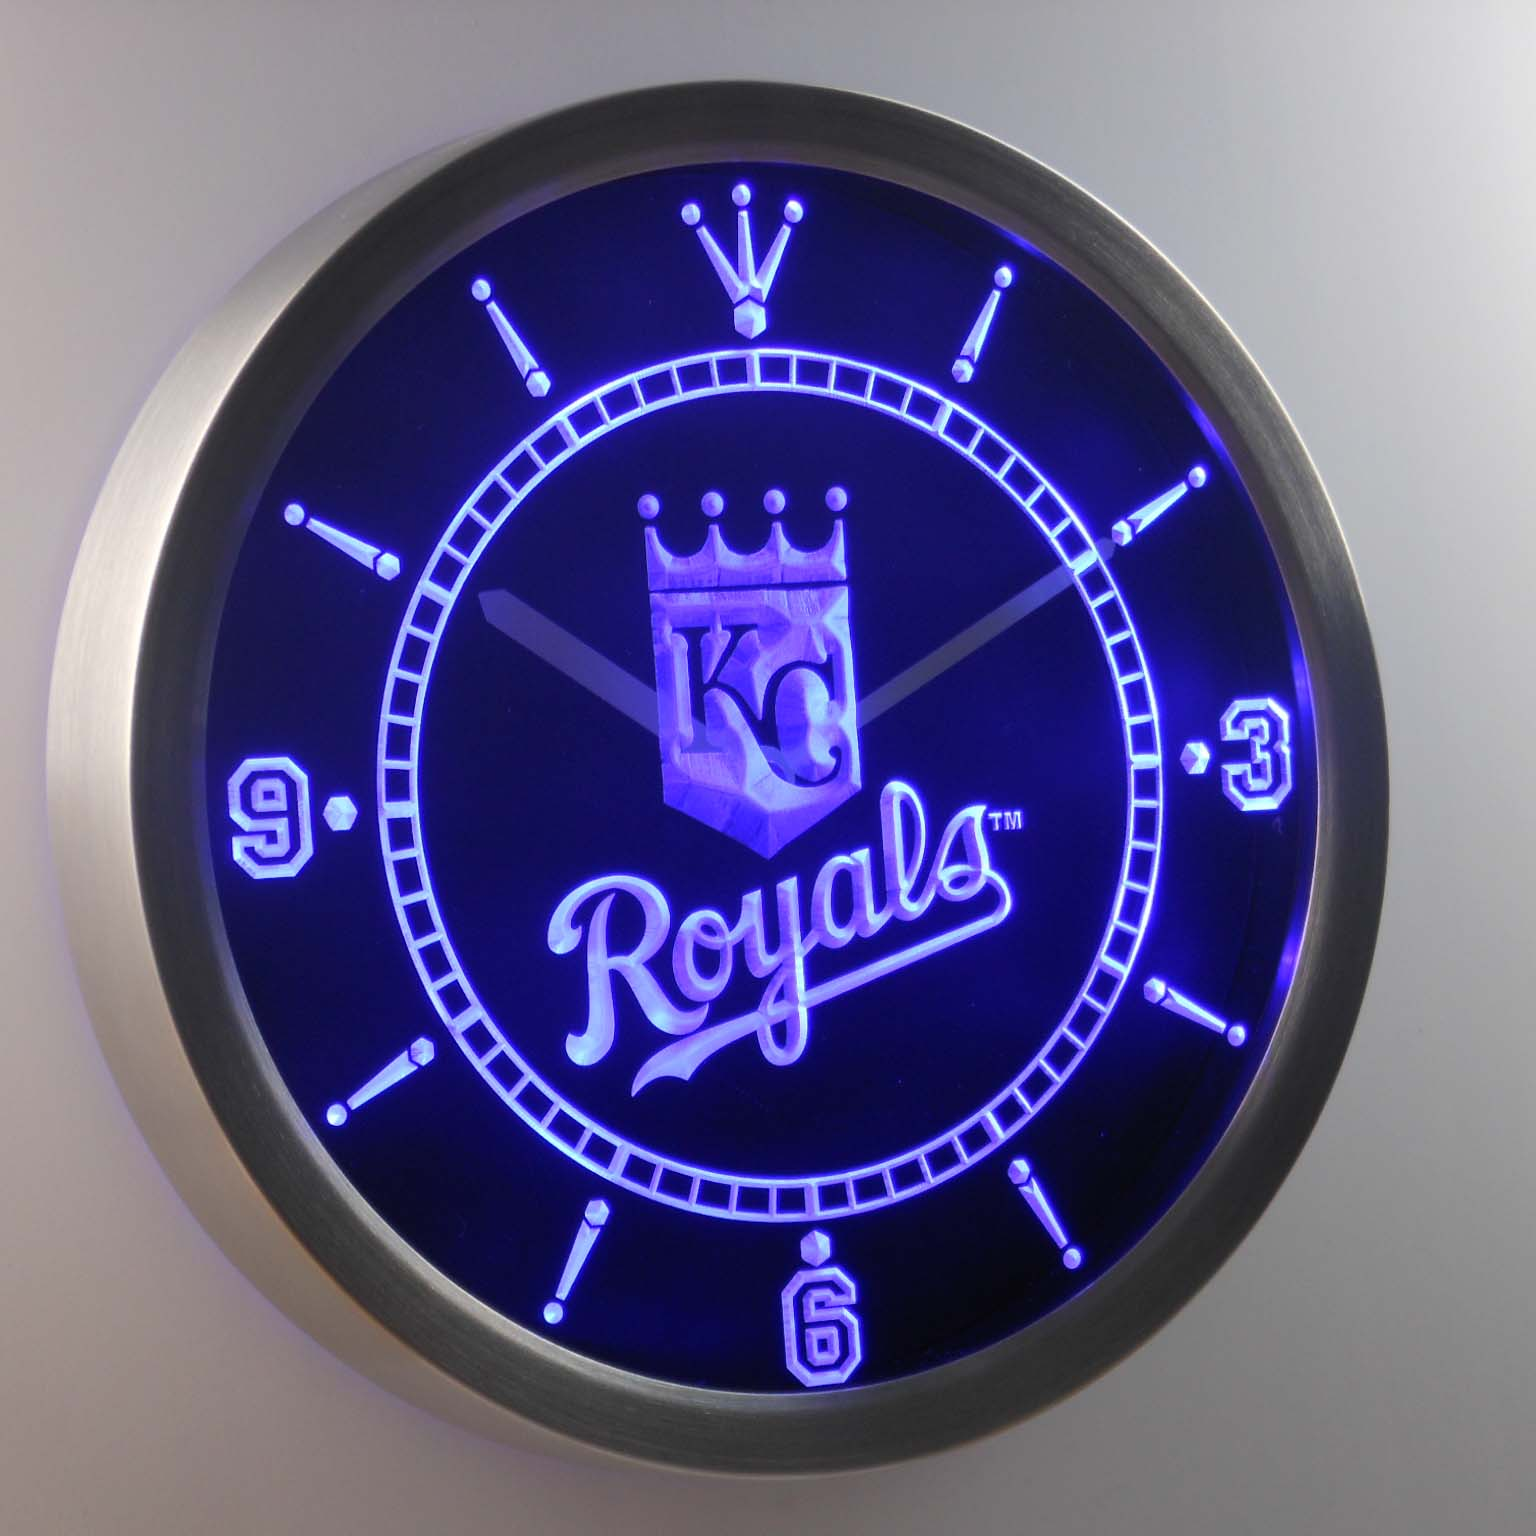 Nc0557 Kansas City Royals Enseigne Au Néon Horloge Murale LED